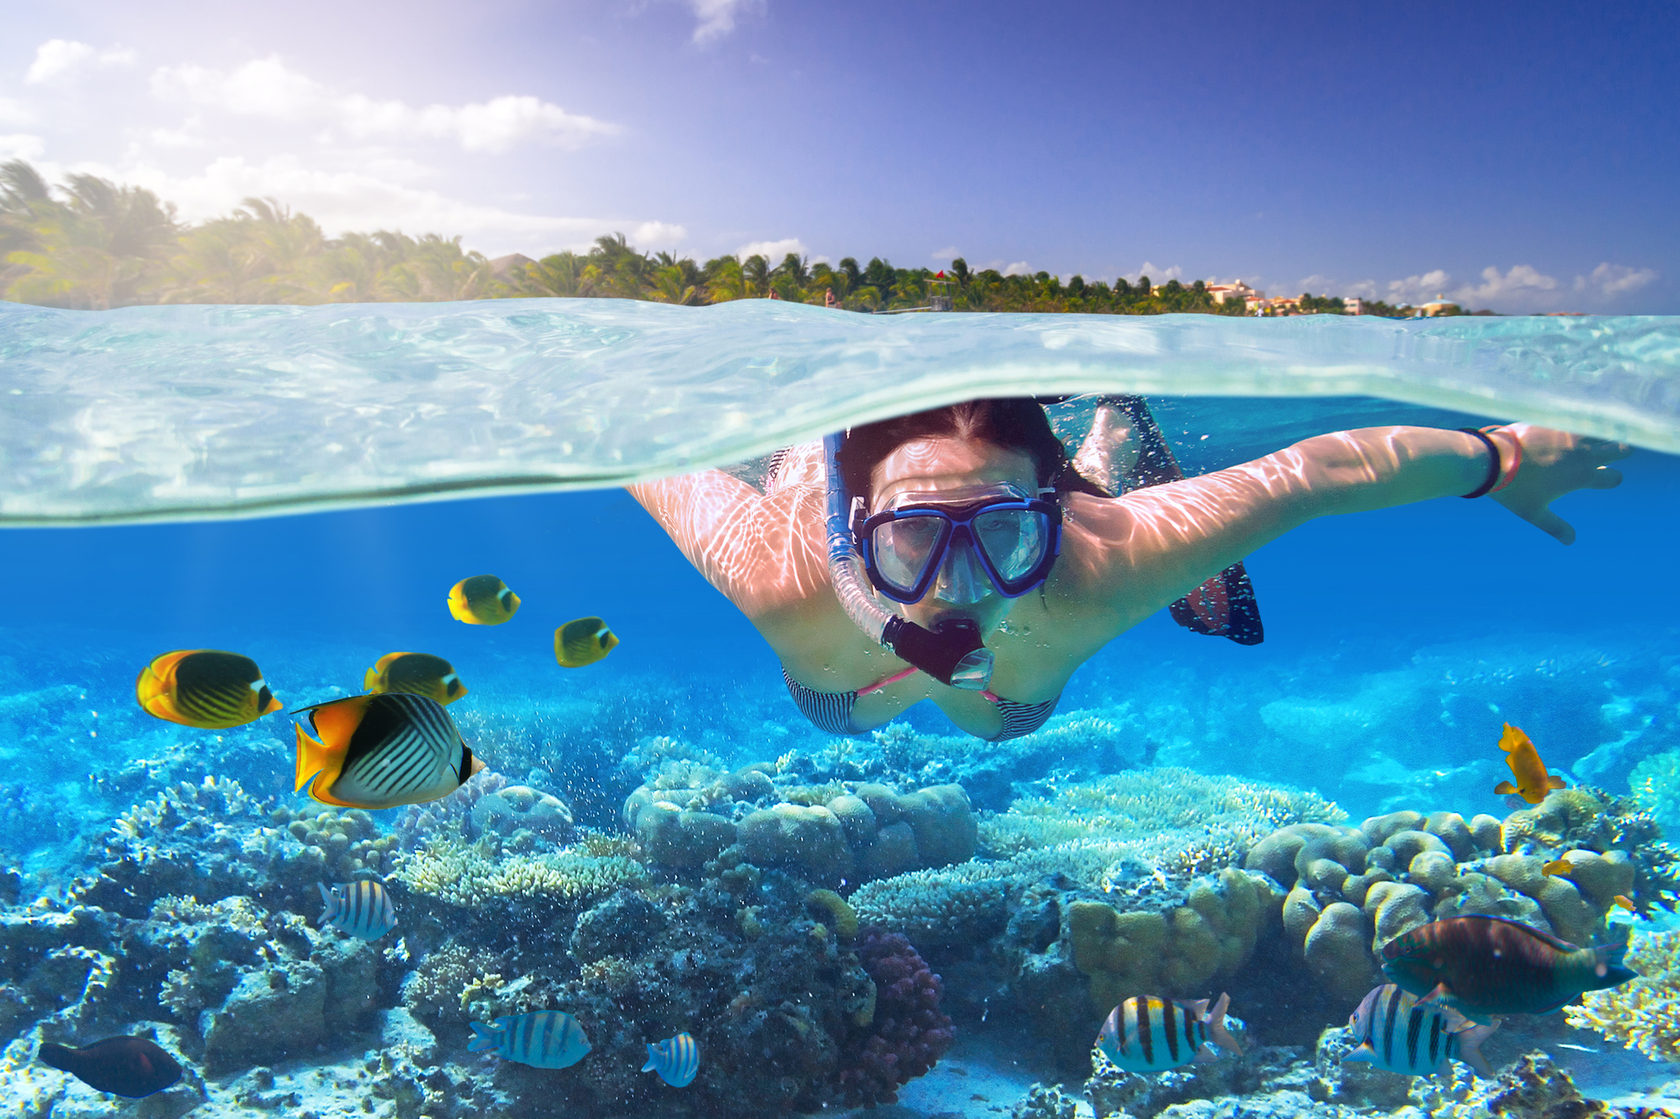 Best Scuba Masks Reviews of 2021 – Our TOP 6 picks and Buyer's guide